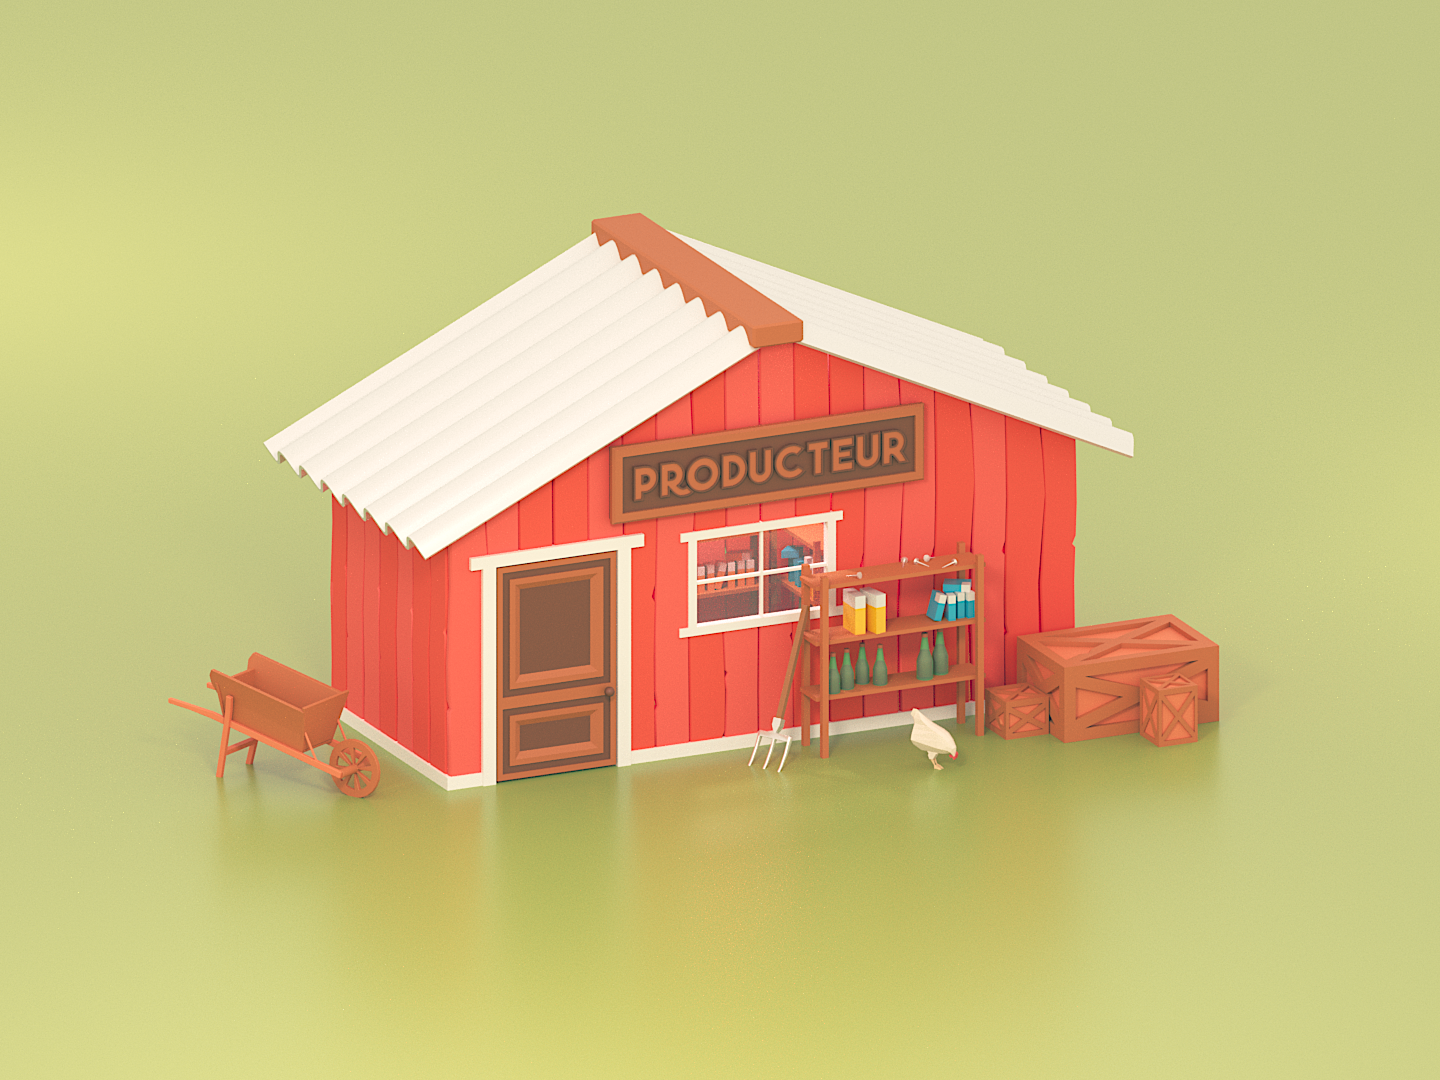 Farmer Store farm shop store cartoon architecture lowpolyart 3dsmax minimalist illustration lowpoly isometric 3d